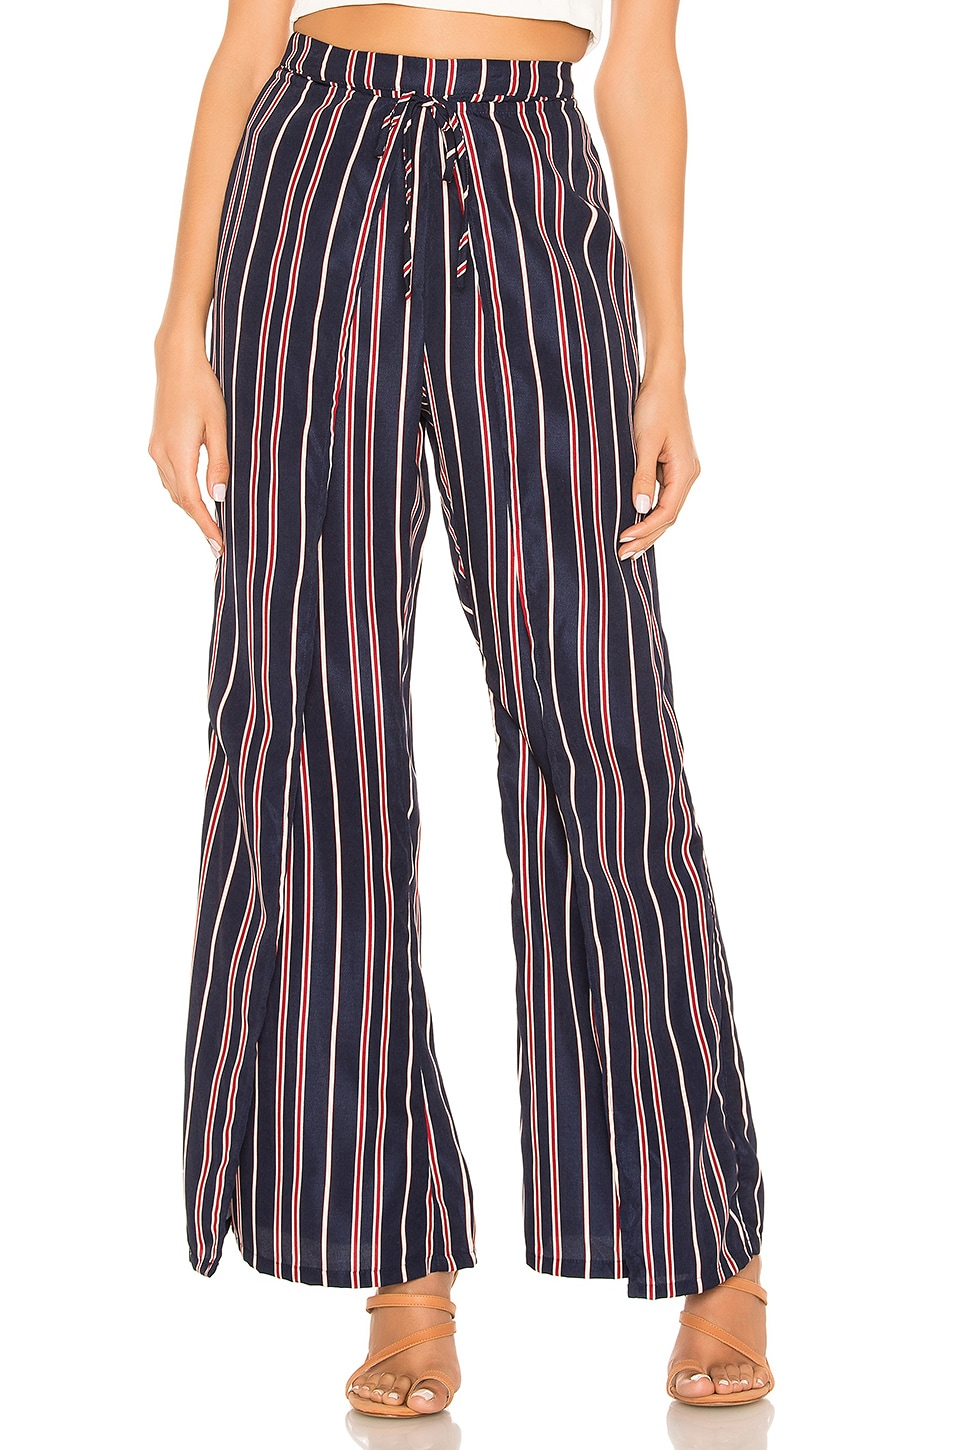 superdown Morgan Tie Front Pantss in Navy Stripe